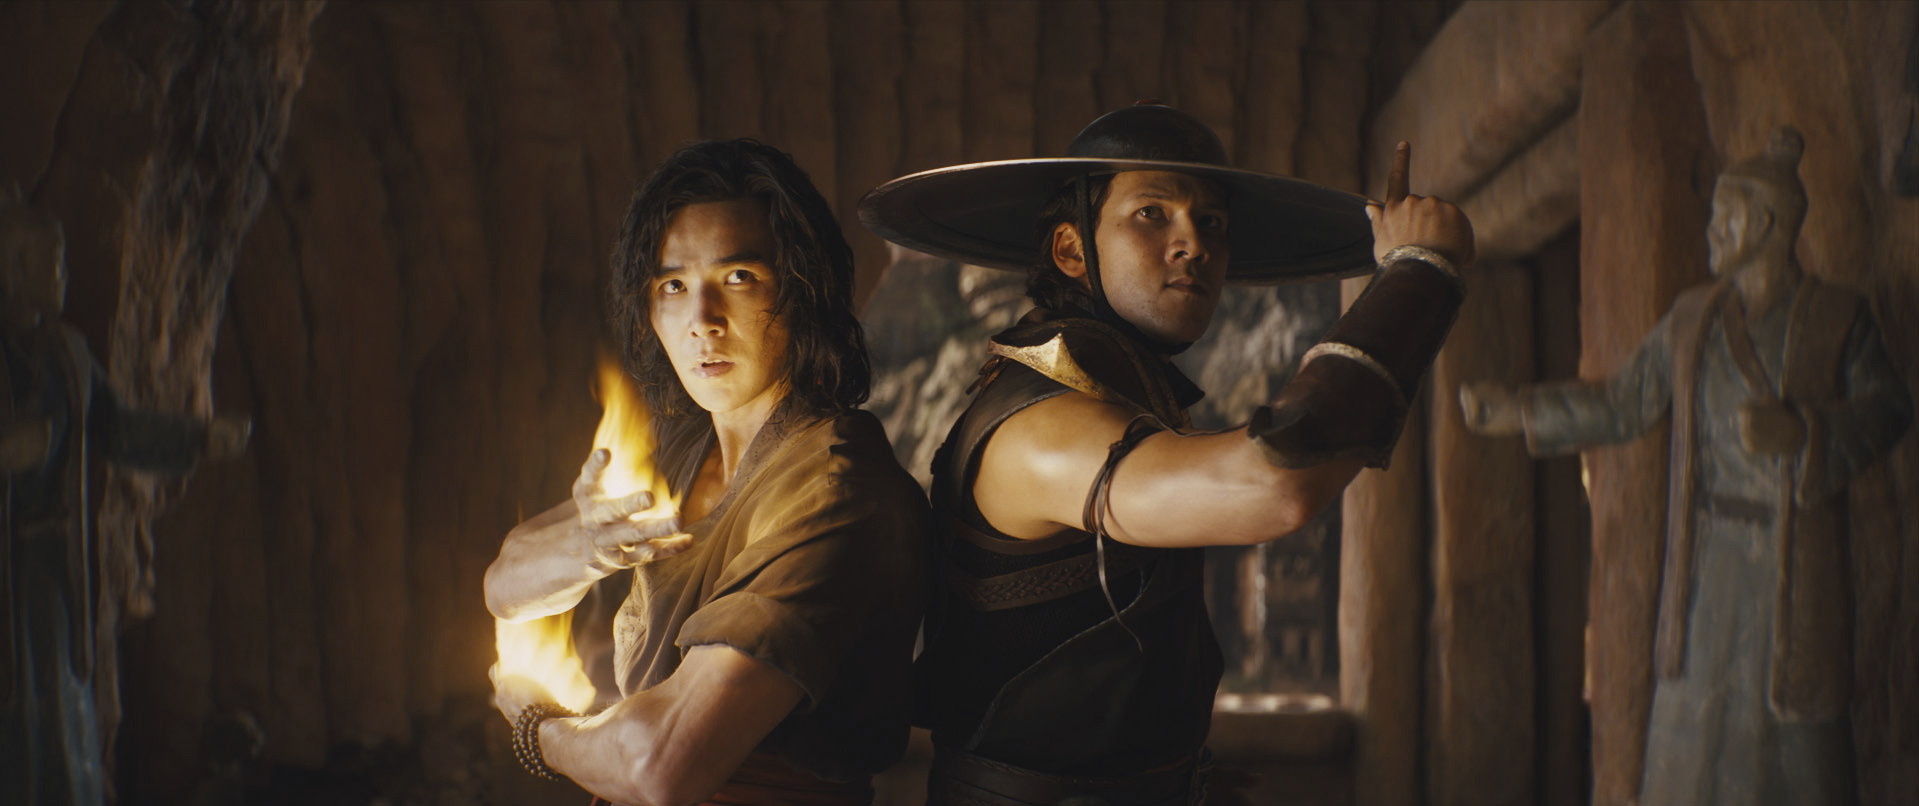 LUDI LIN as Liu Kang and MAX HUANG as Kung Lao in New Line Cinema's action adventure